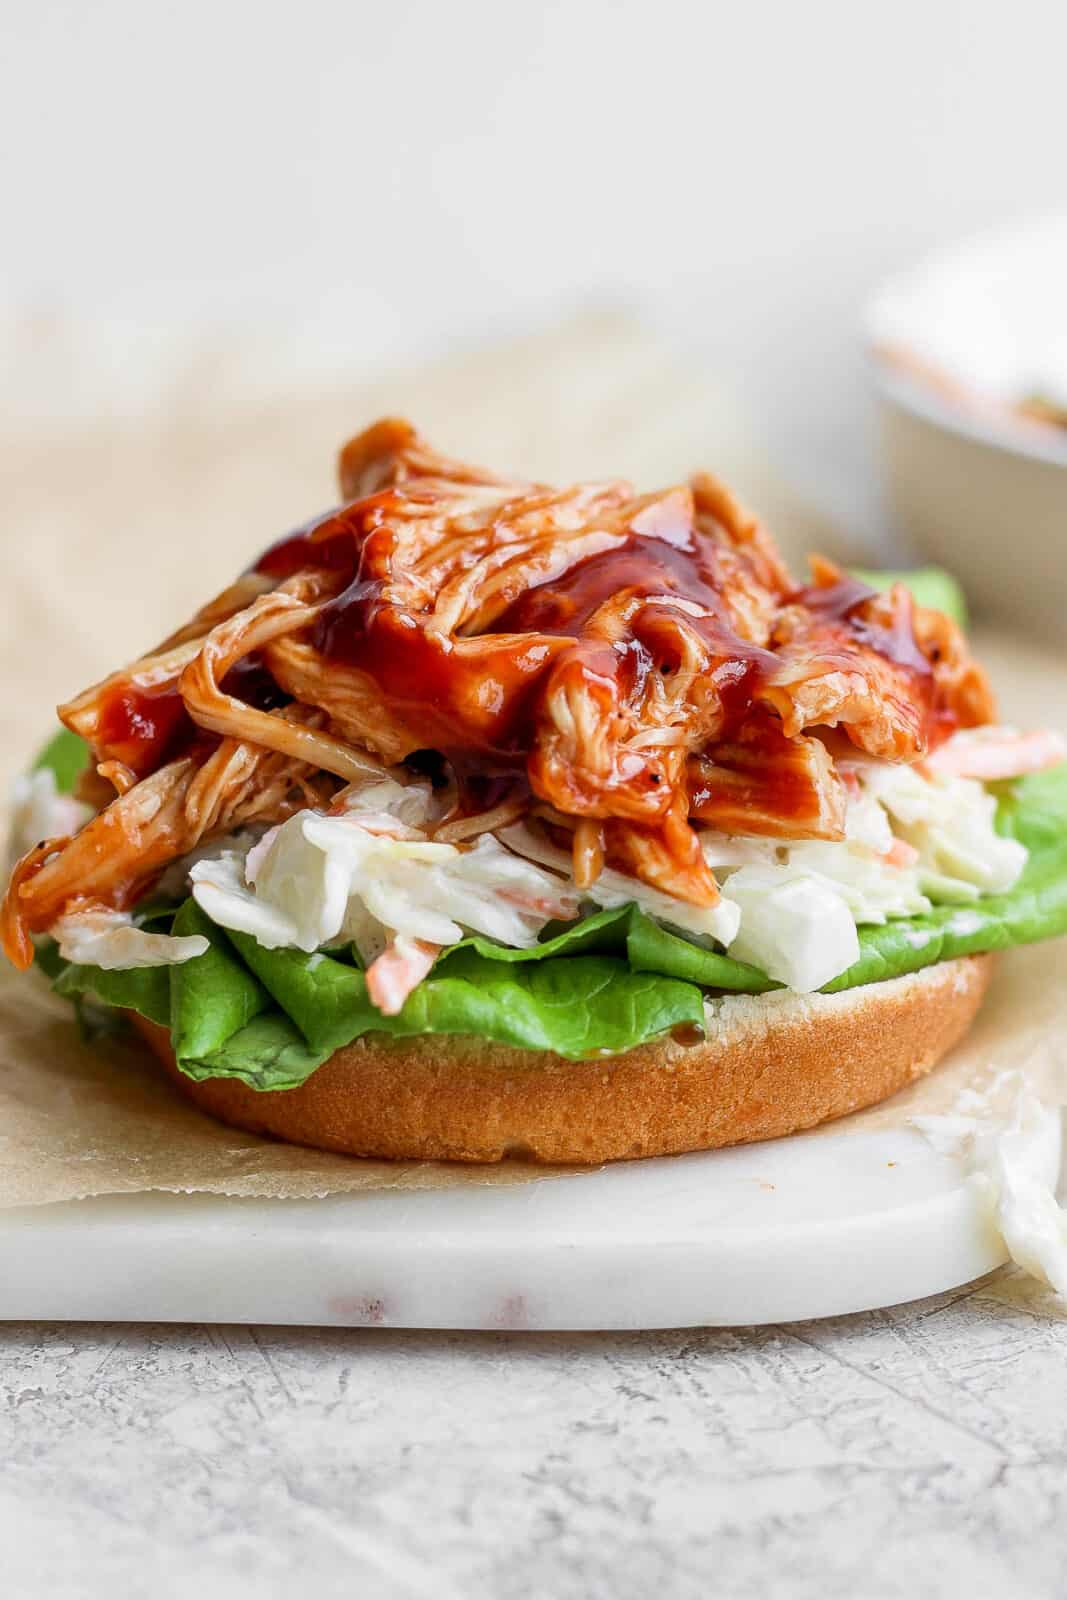 BBQ chicken on a bun with coleslaw and lettuce.